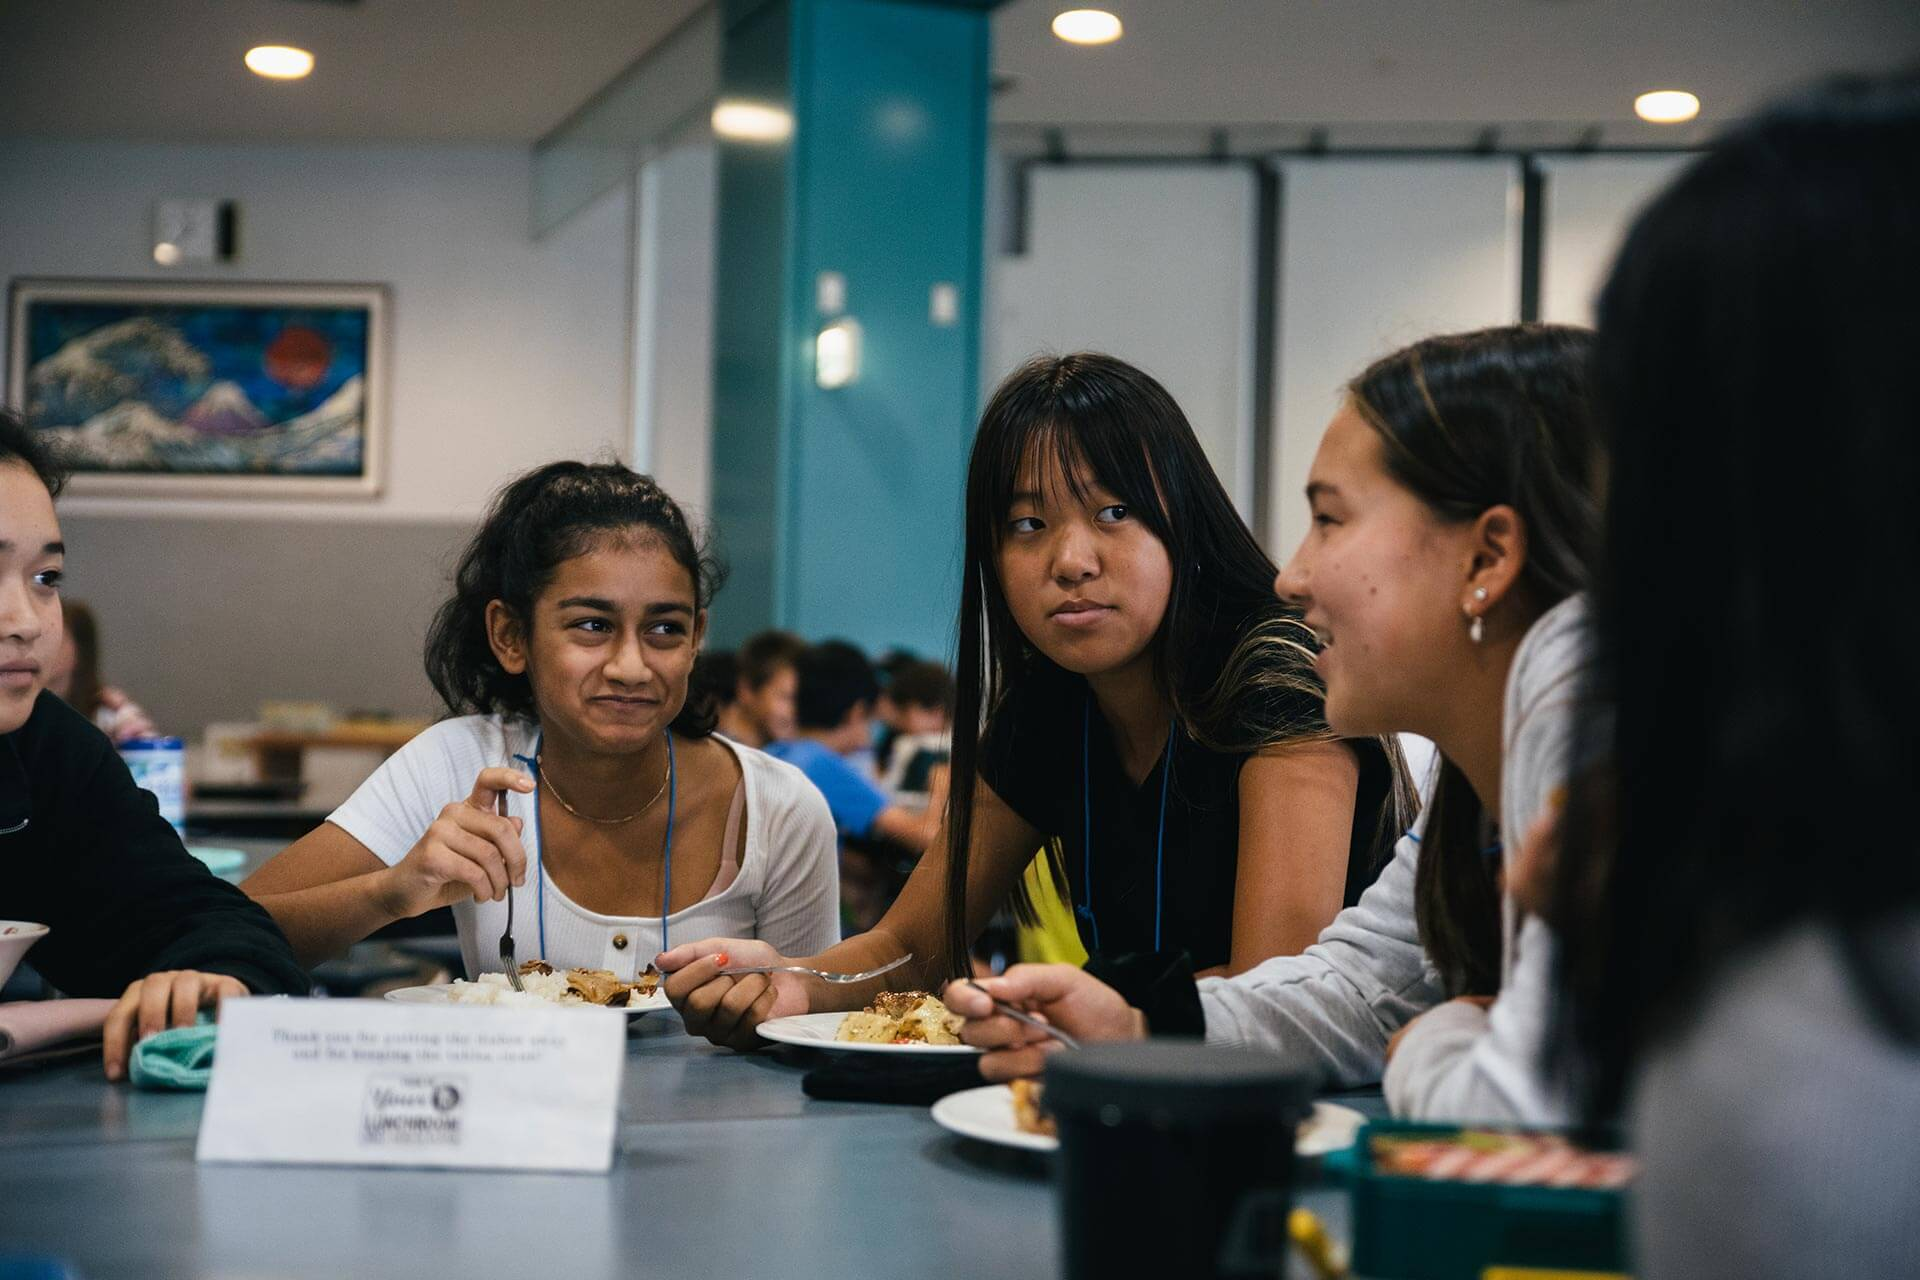 Students Socialize at Lunch in the ASIJ Cafeteria